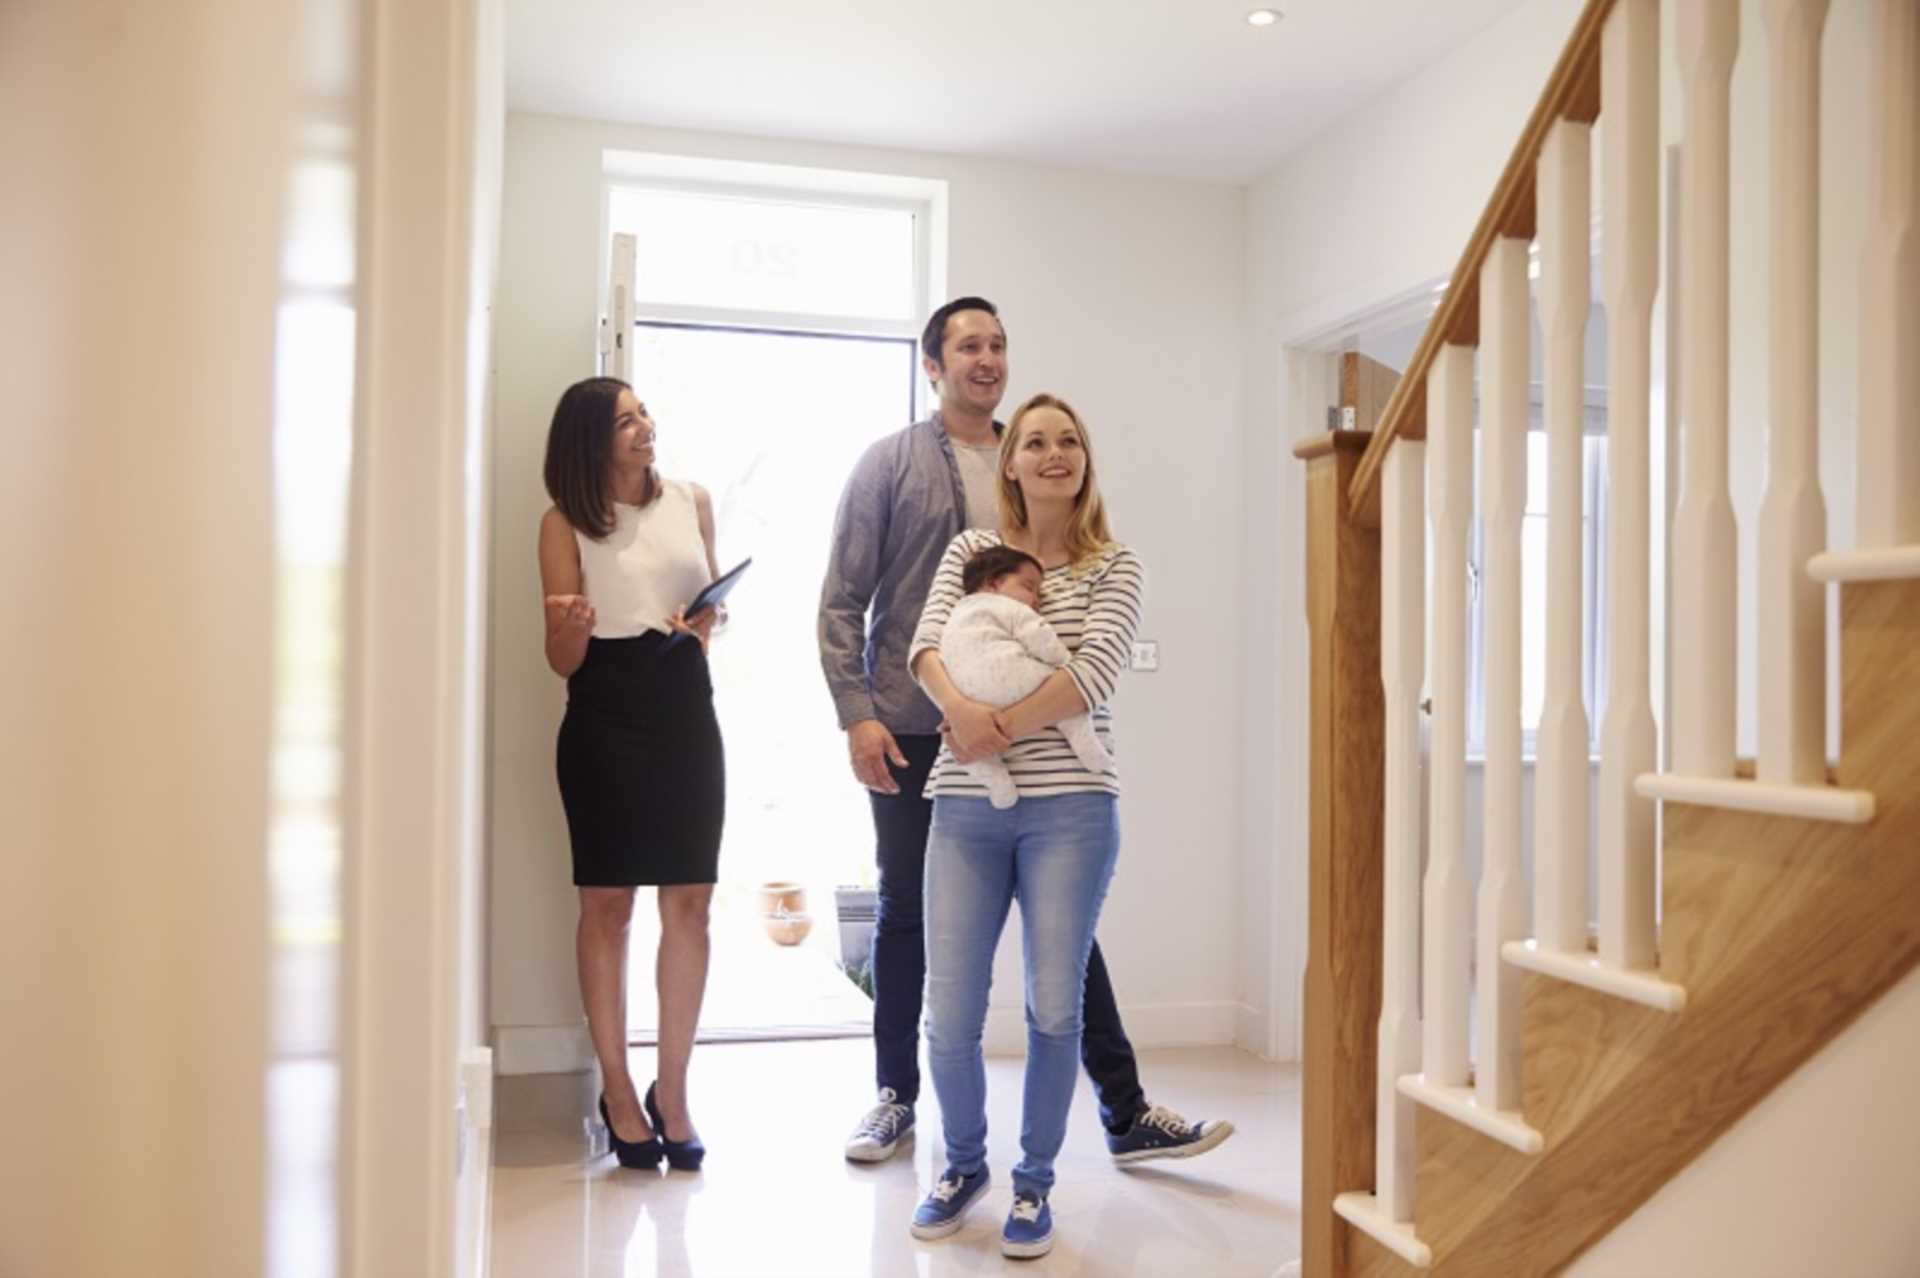 Take these 10 key factors into account during your next property viewing...